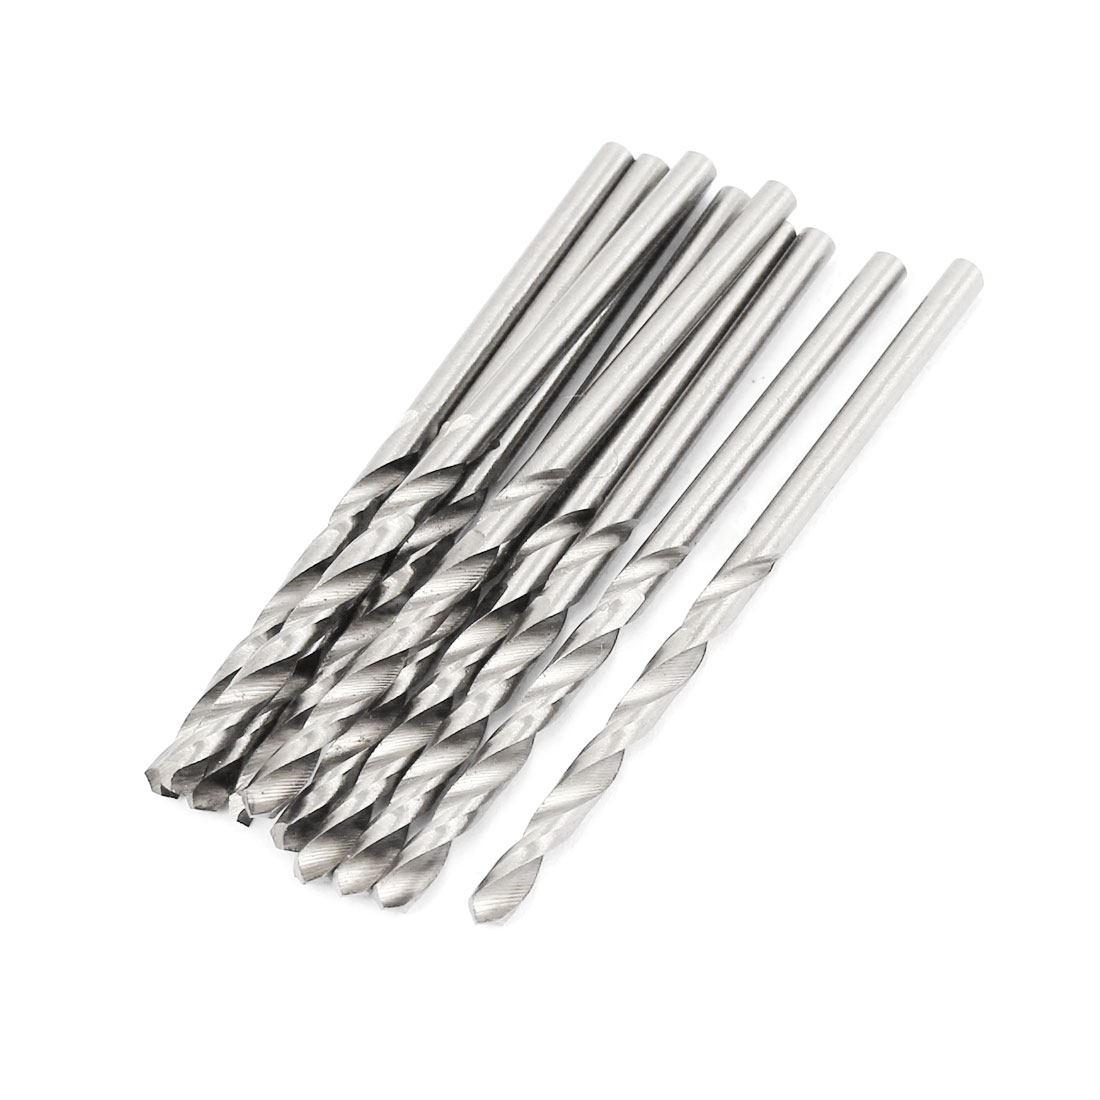 10 Pcs 31mm Length Flute 2.6mm Dia Metal Marble HSS Twist Drilling Drill Bit